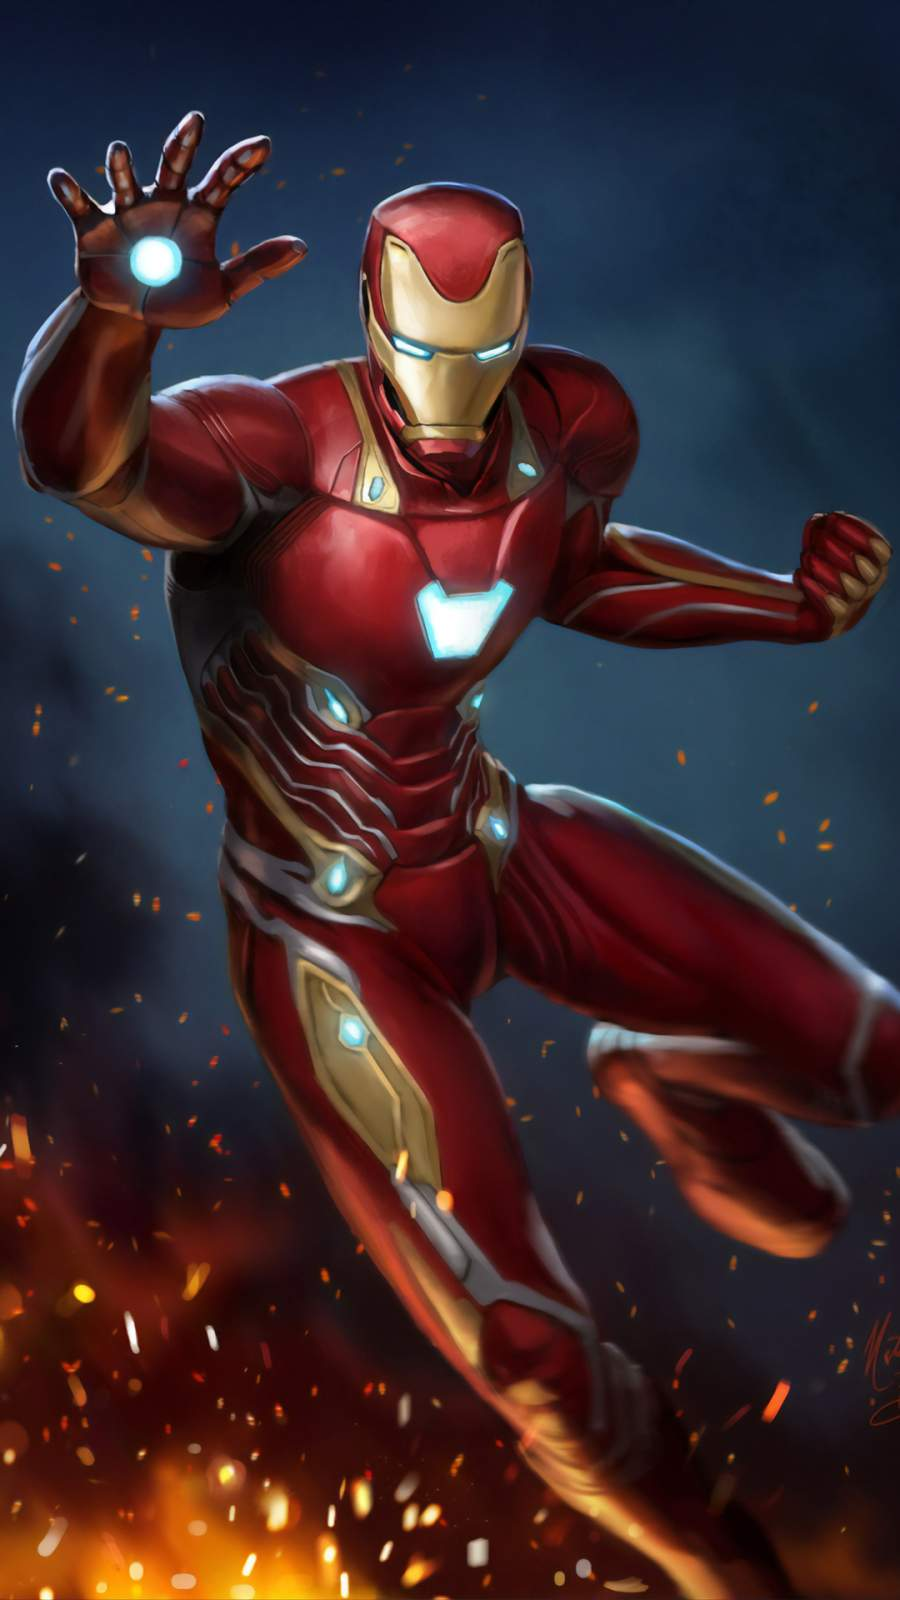 Art Iron Man Mark 50 iPhone Wallpaper